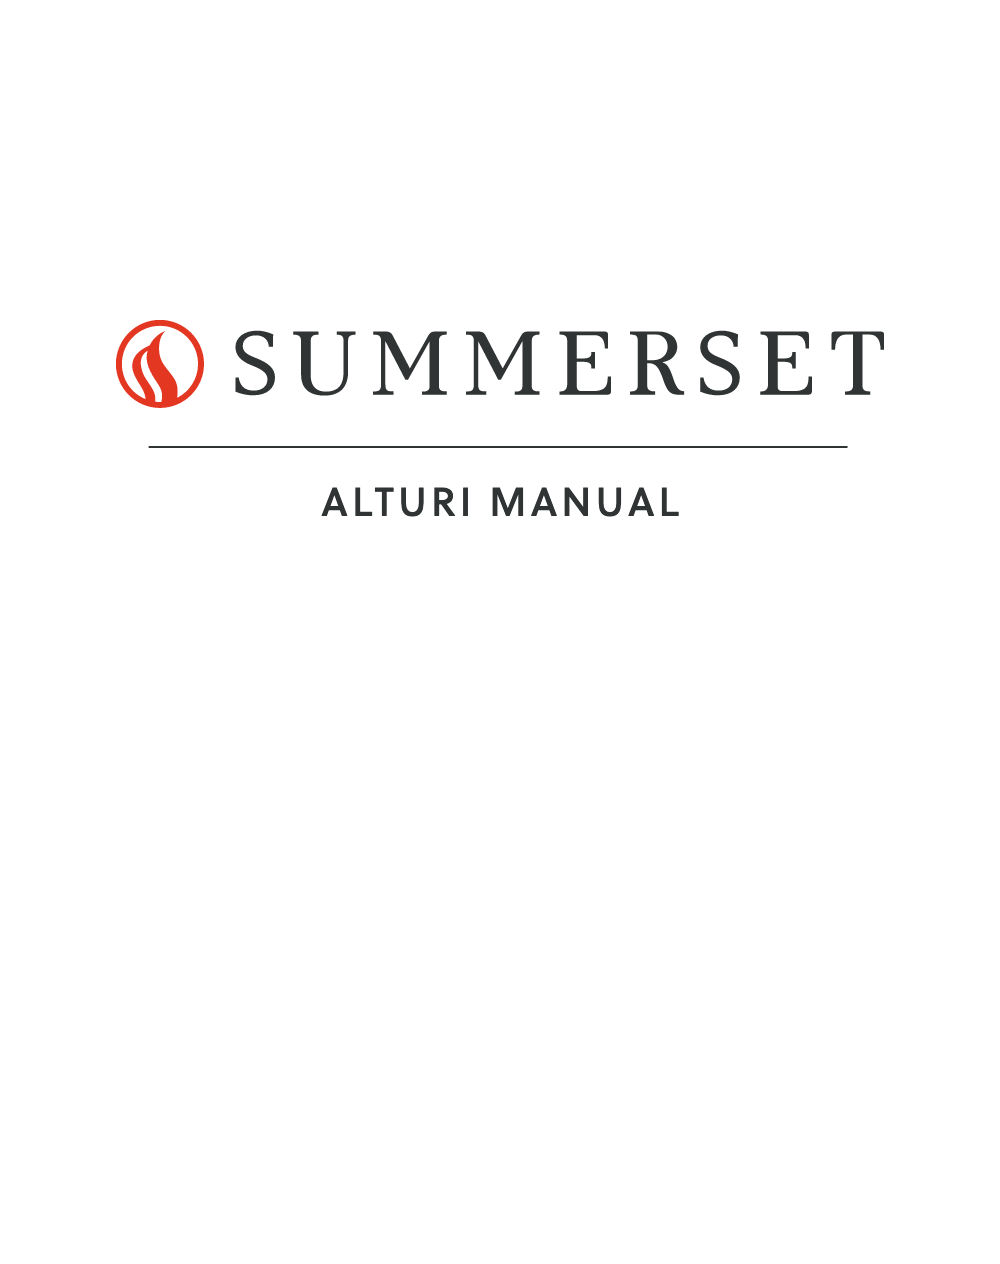 Alturi Owners Manual